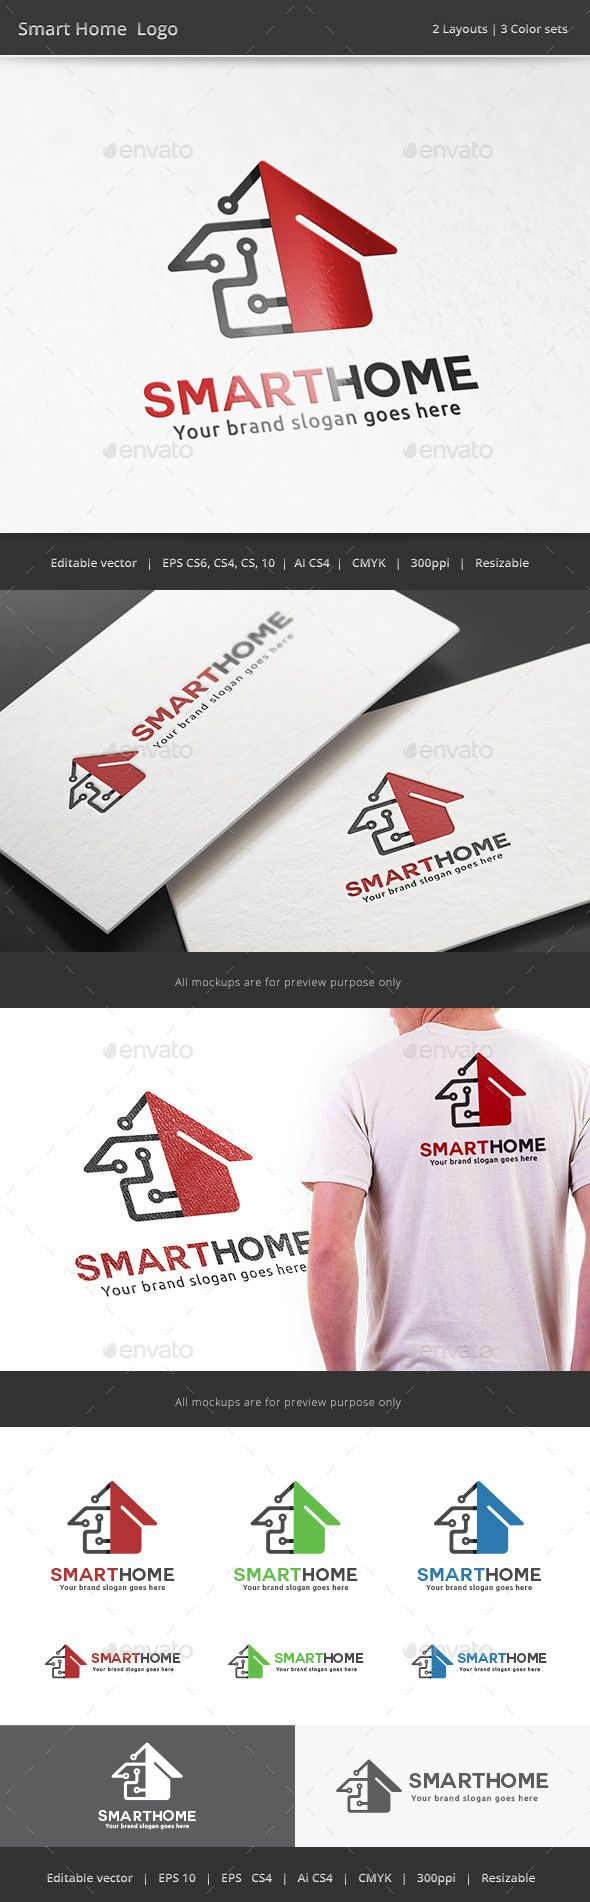 Smart Tech Home Logo Template #design #logotype Download: http://graphicriver.net/item/smart-tech-home-logo/11591144?ref=ksioks